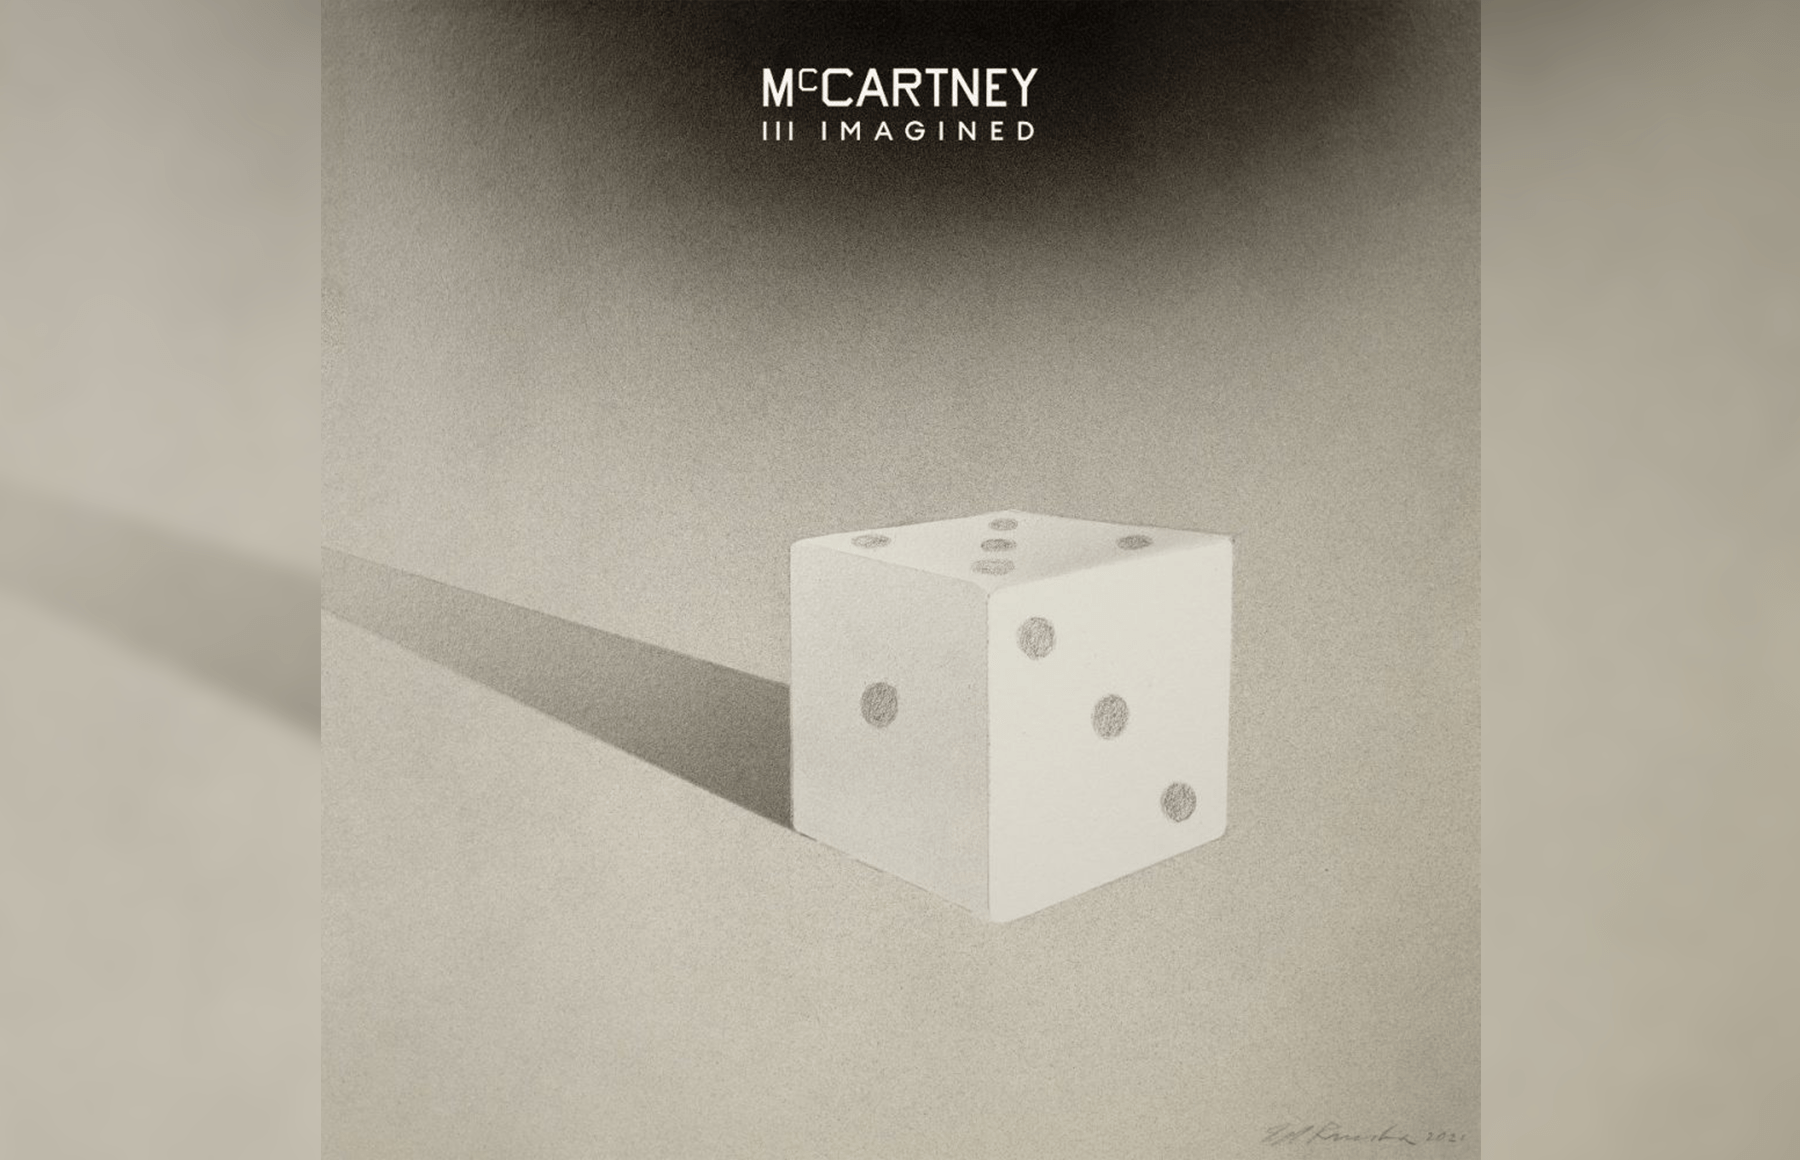 Paul McCartney enlists Dominic Fike, Phoebe Bridgers for iridescent 'McCartney III Imagined'